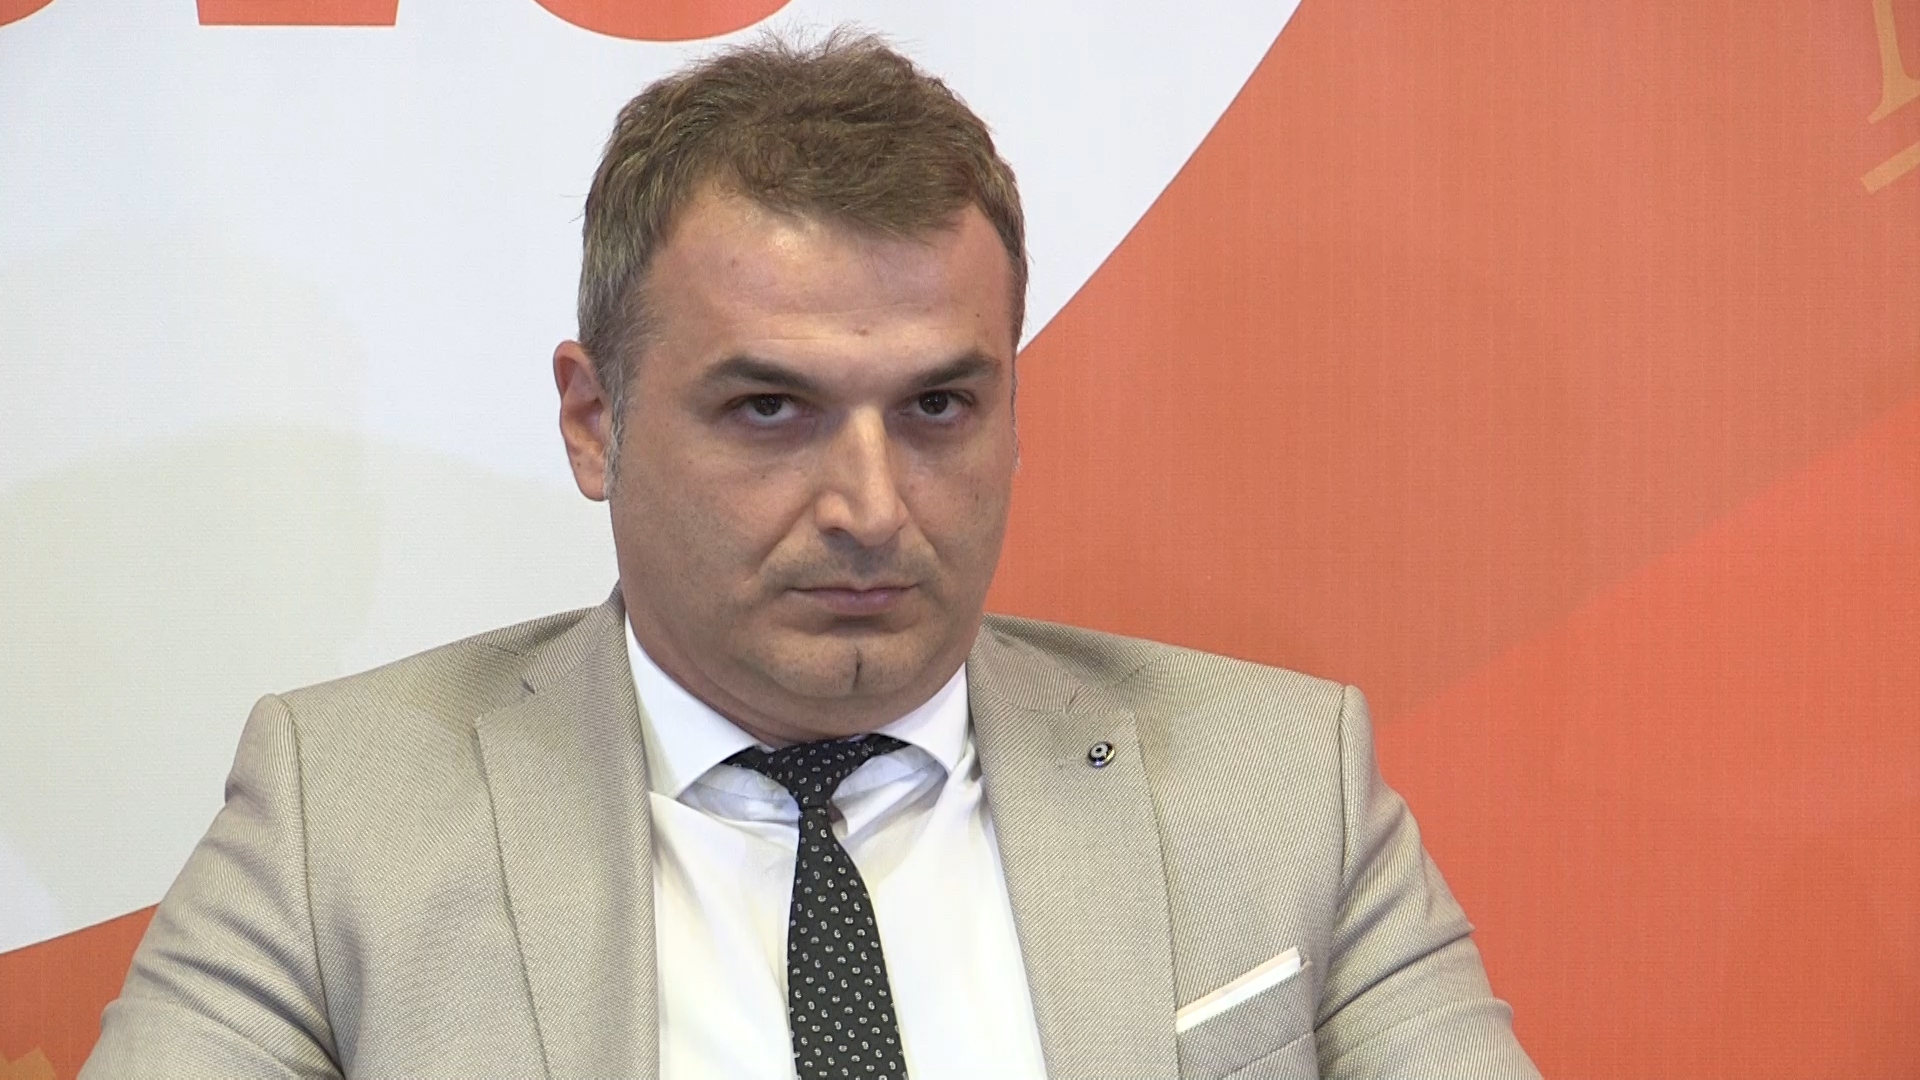 Kosovo: The Director of Civil Aviation has been fired